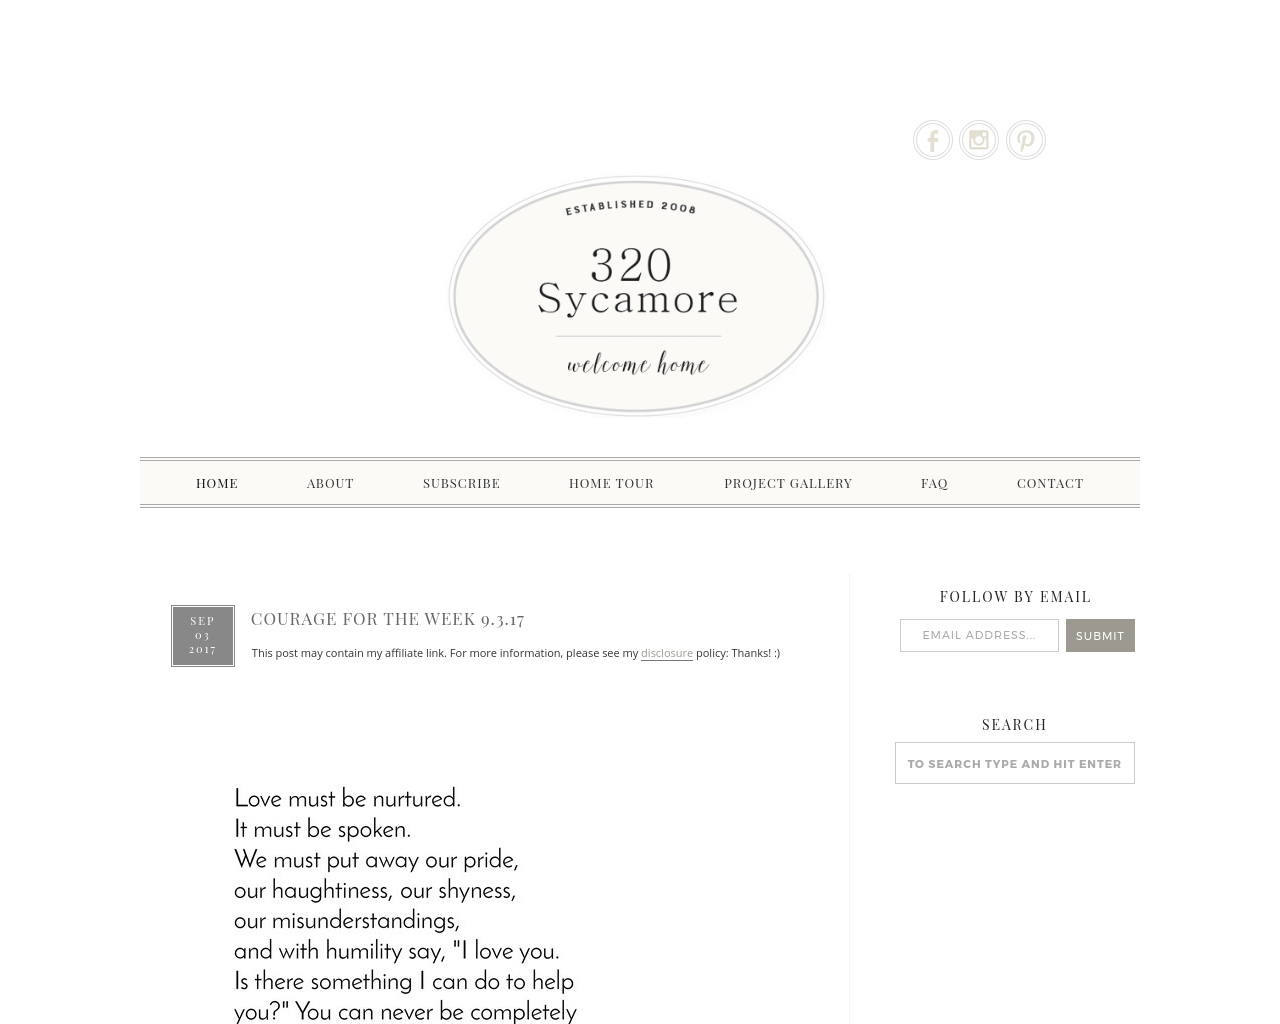 320-Sycamore-Advertising-Reviews-Pricing